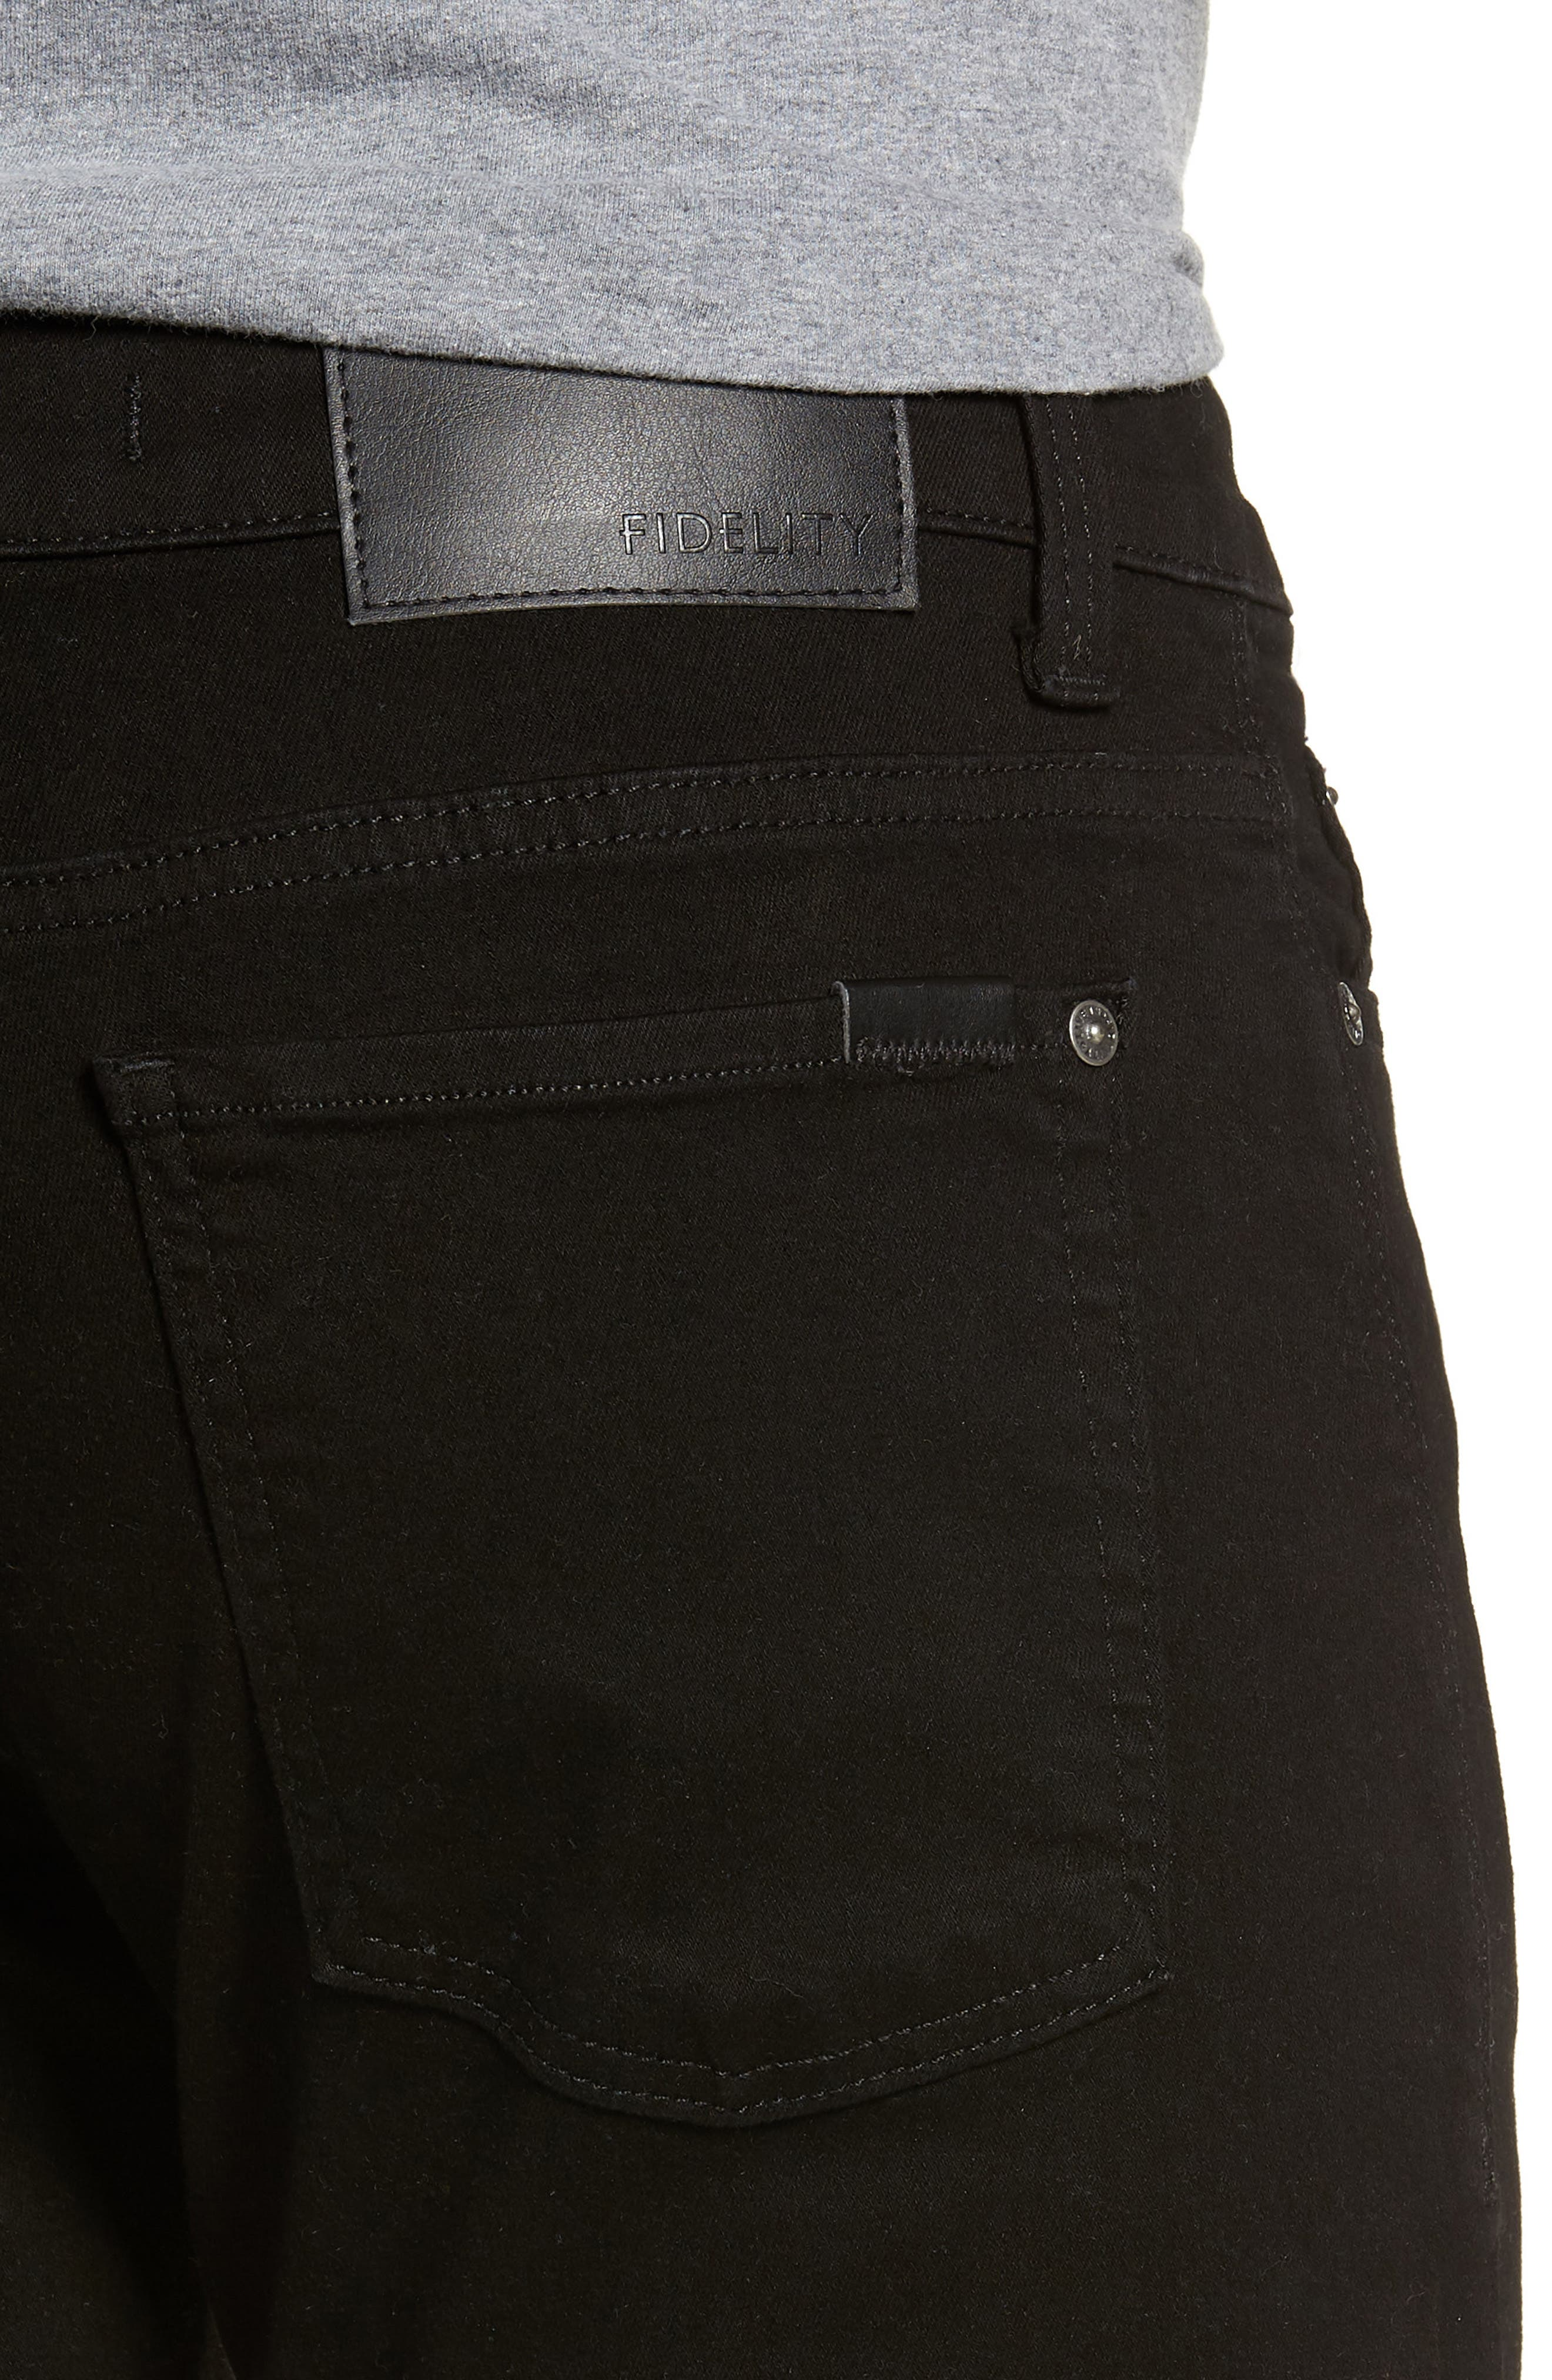 50-11 Relaxed Fit Jeans,                             Alternate thumbnail 4, color,                             GOTHAM BLACK